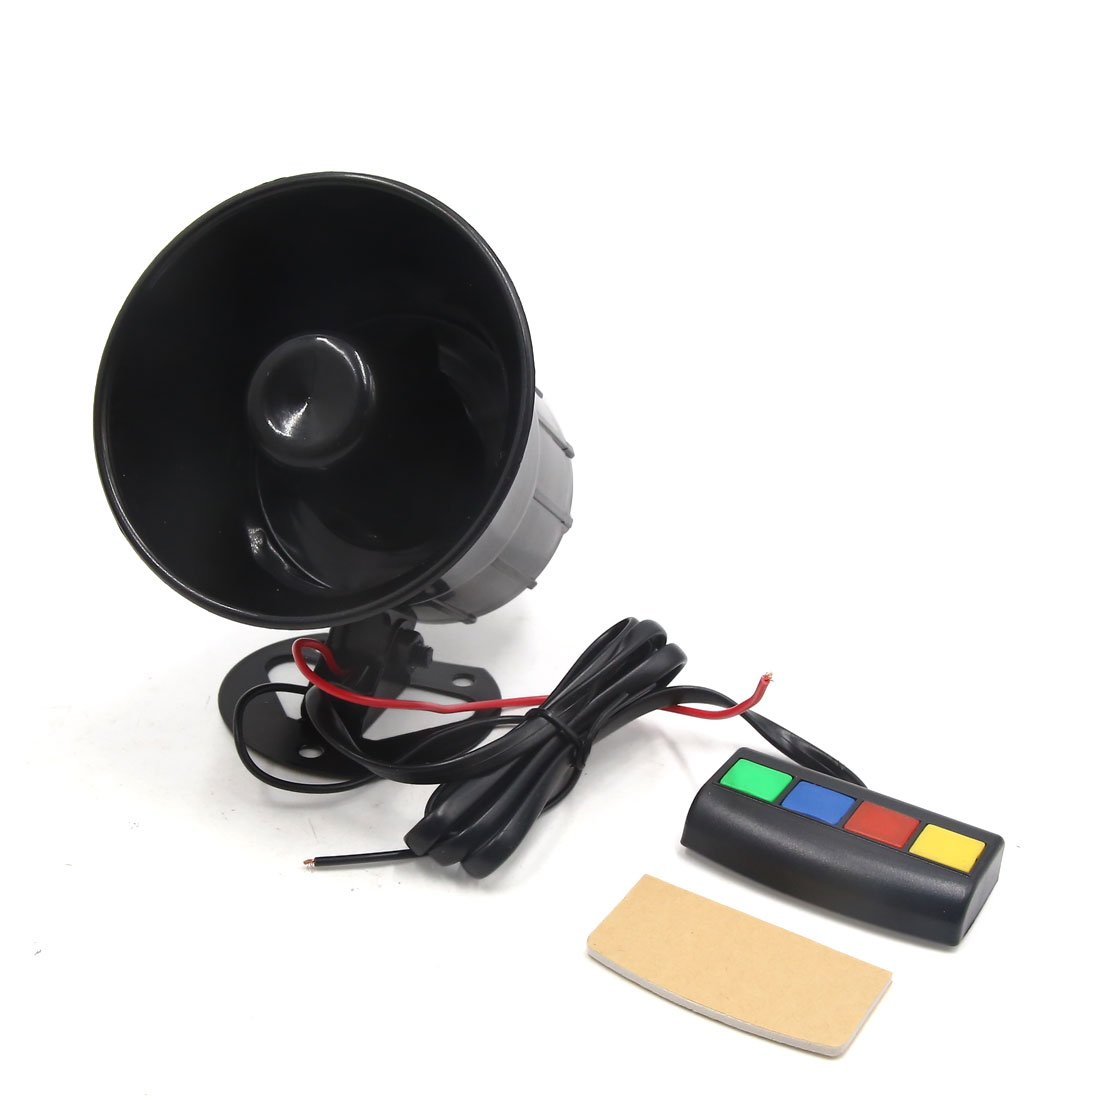 uxcell DC 12V 30W 105dB Black 4 Sounds Siren Speaker Electric Horn Trumpet for Car Auto